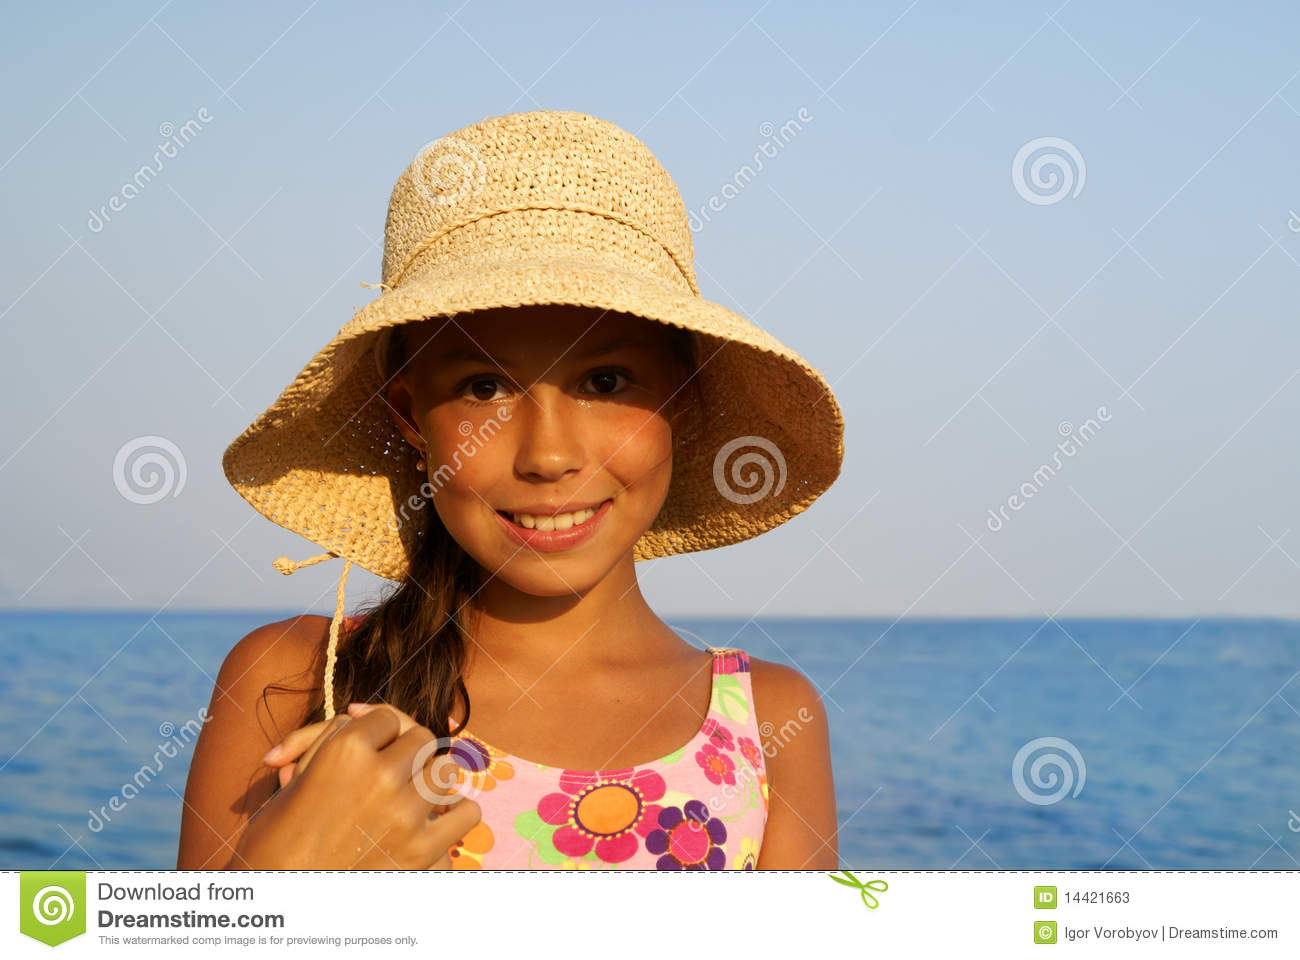 Cheerful preteen girl in straw hat enjoying sun-bath on sea beach.